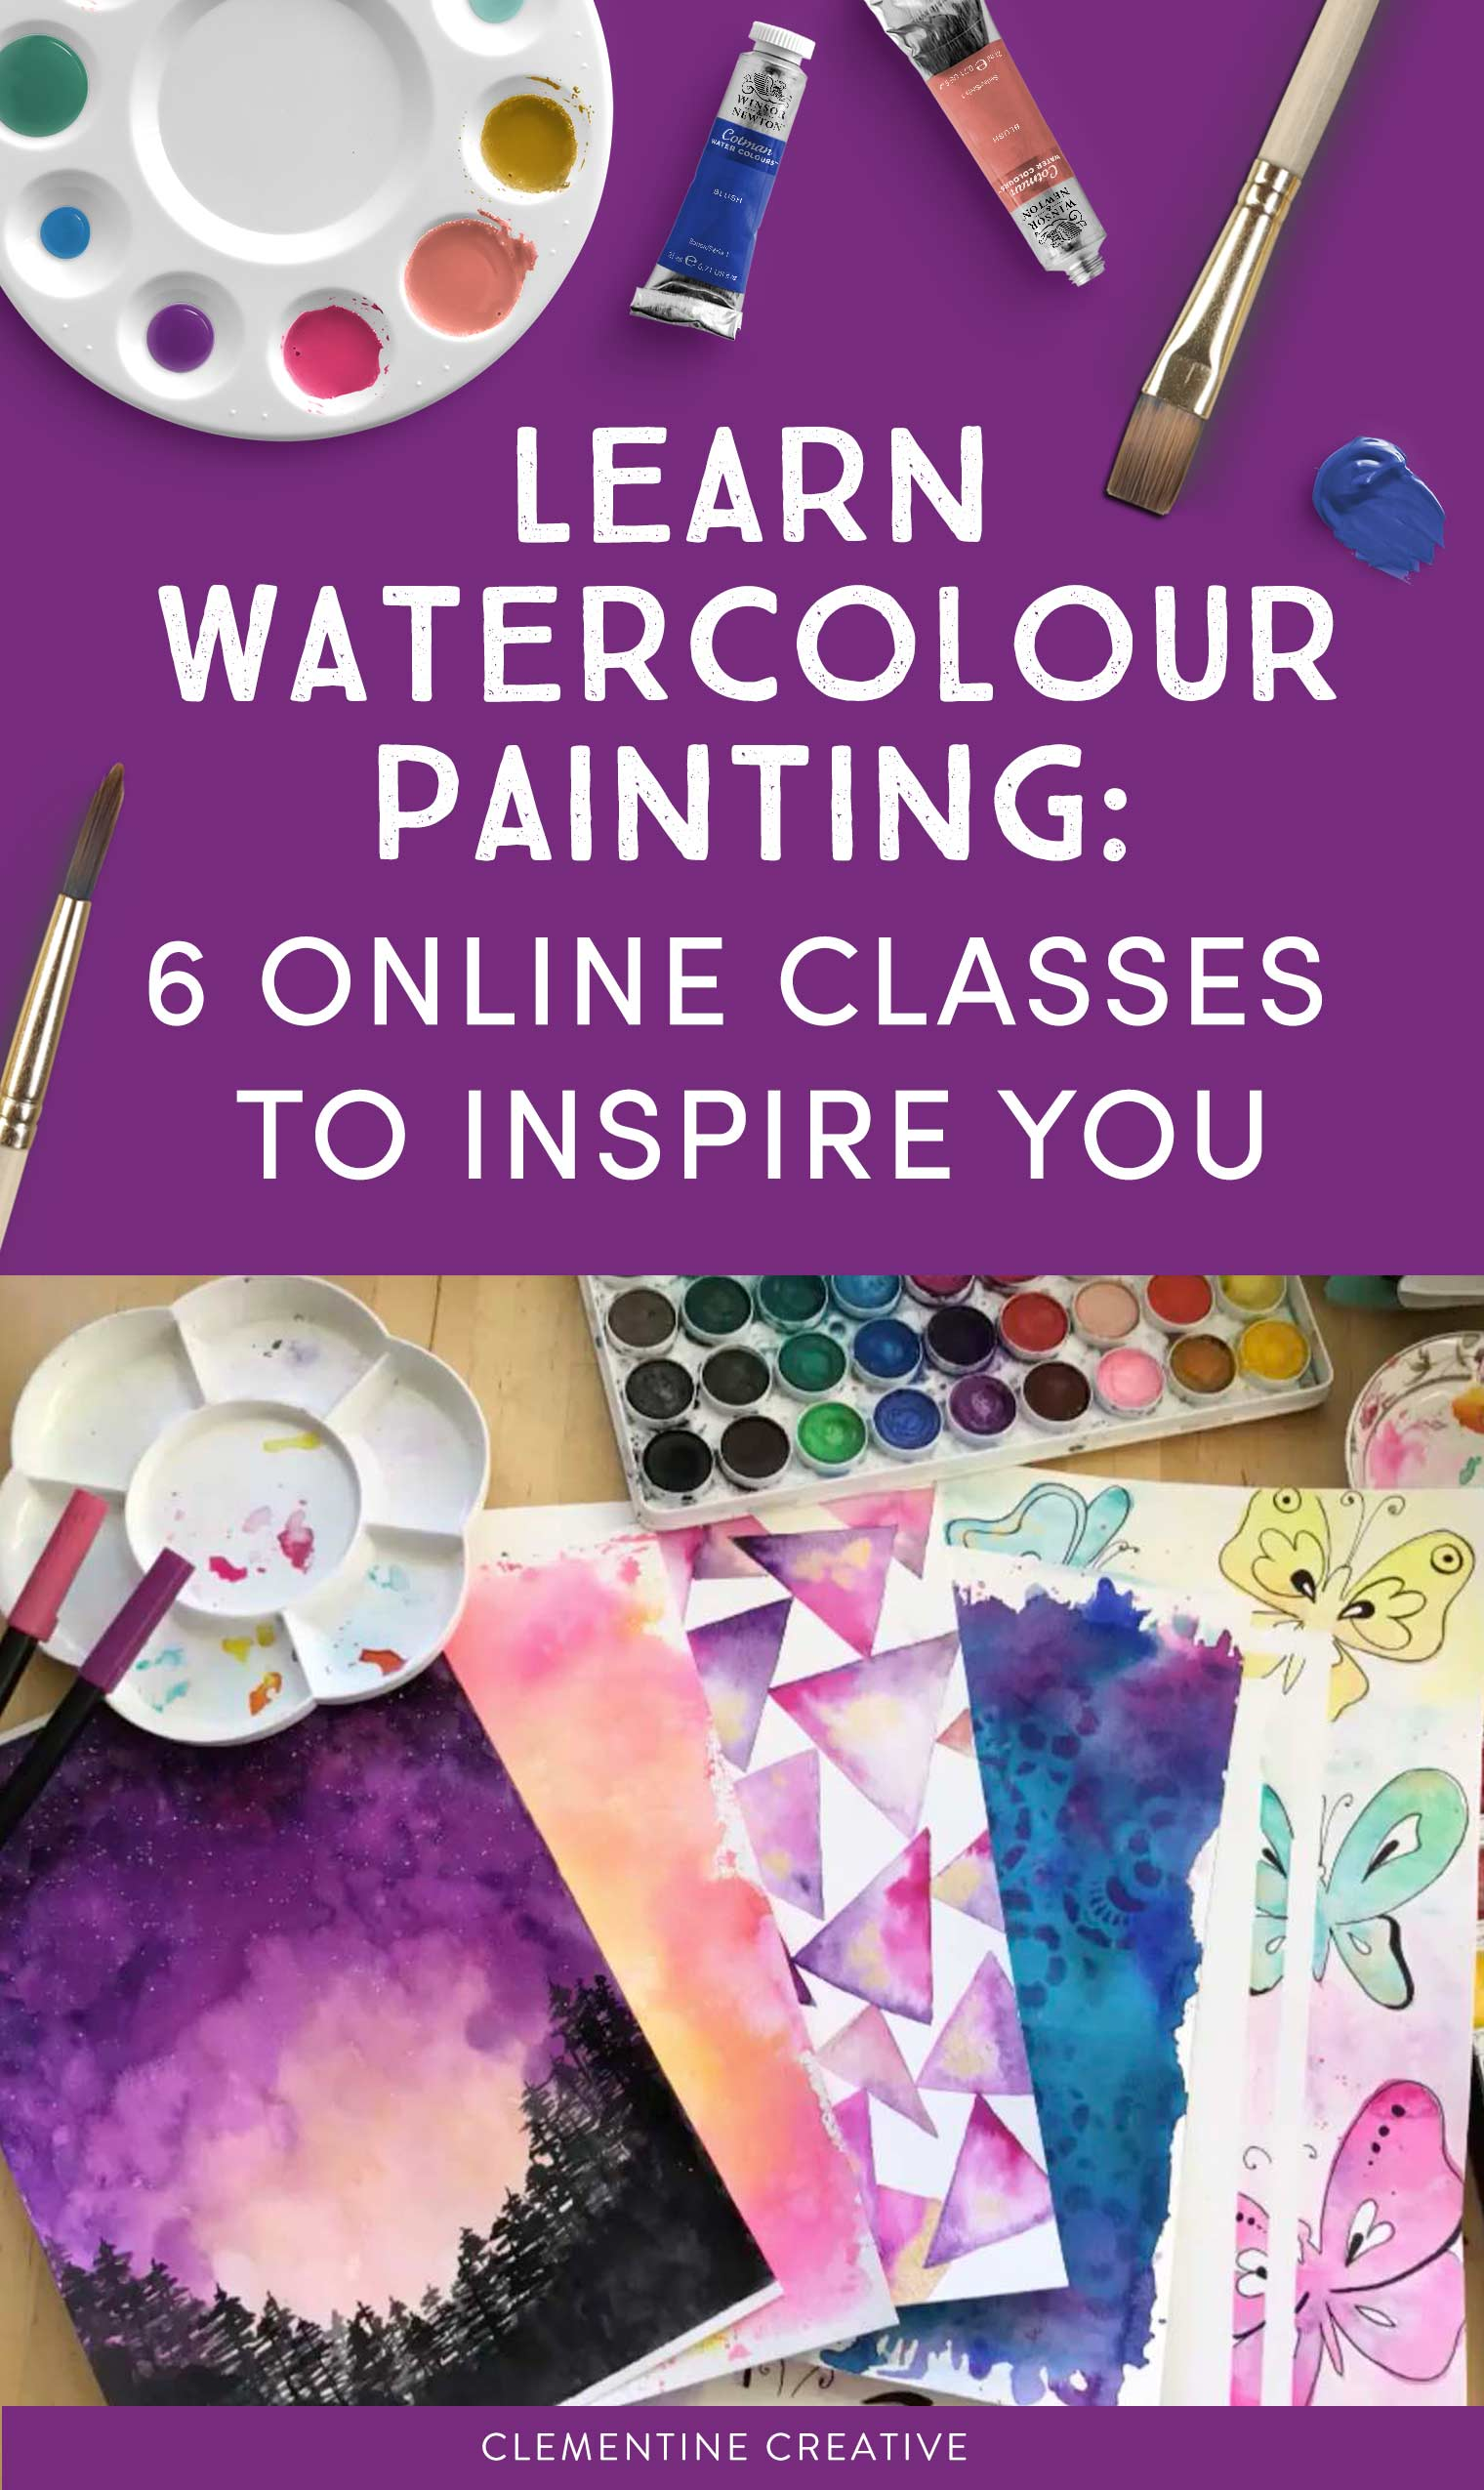 Learn watercolour painting online with these 6 fantastic online classes. These classes are great for beginners and intermediate artists. Go ahead, give it a try!